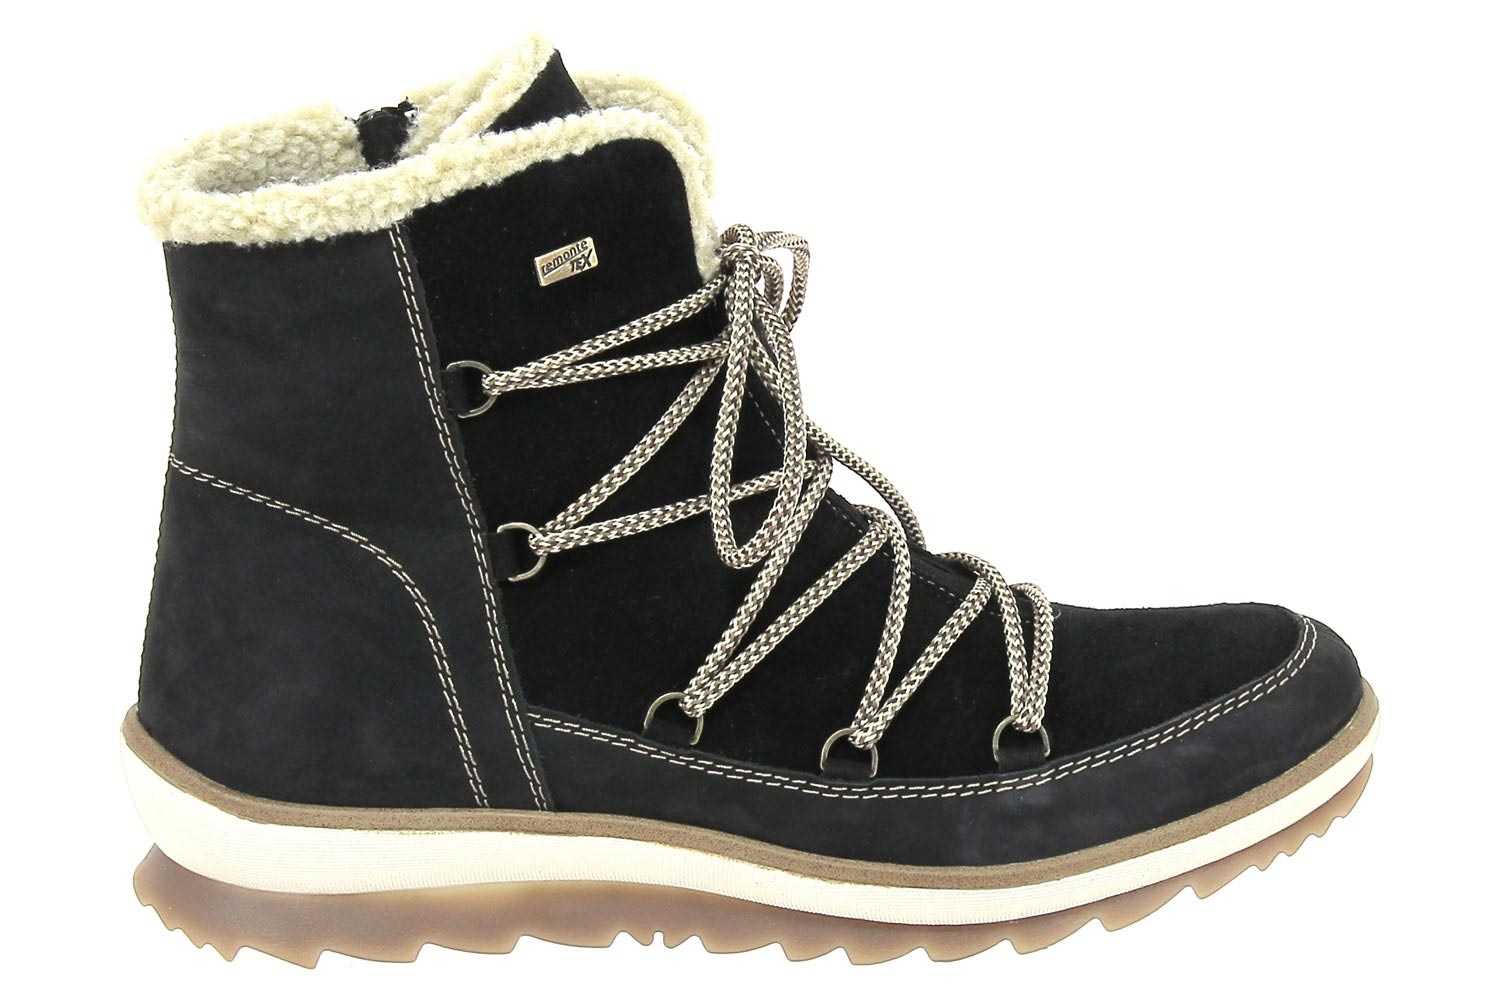 Chaussures Montantes Fourrees Remonte Montantes Noir Montantes Noir Chaussures Remonte Fourrees Fourrees Chaussures AYtw1t